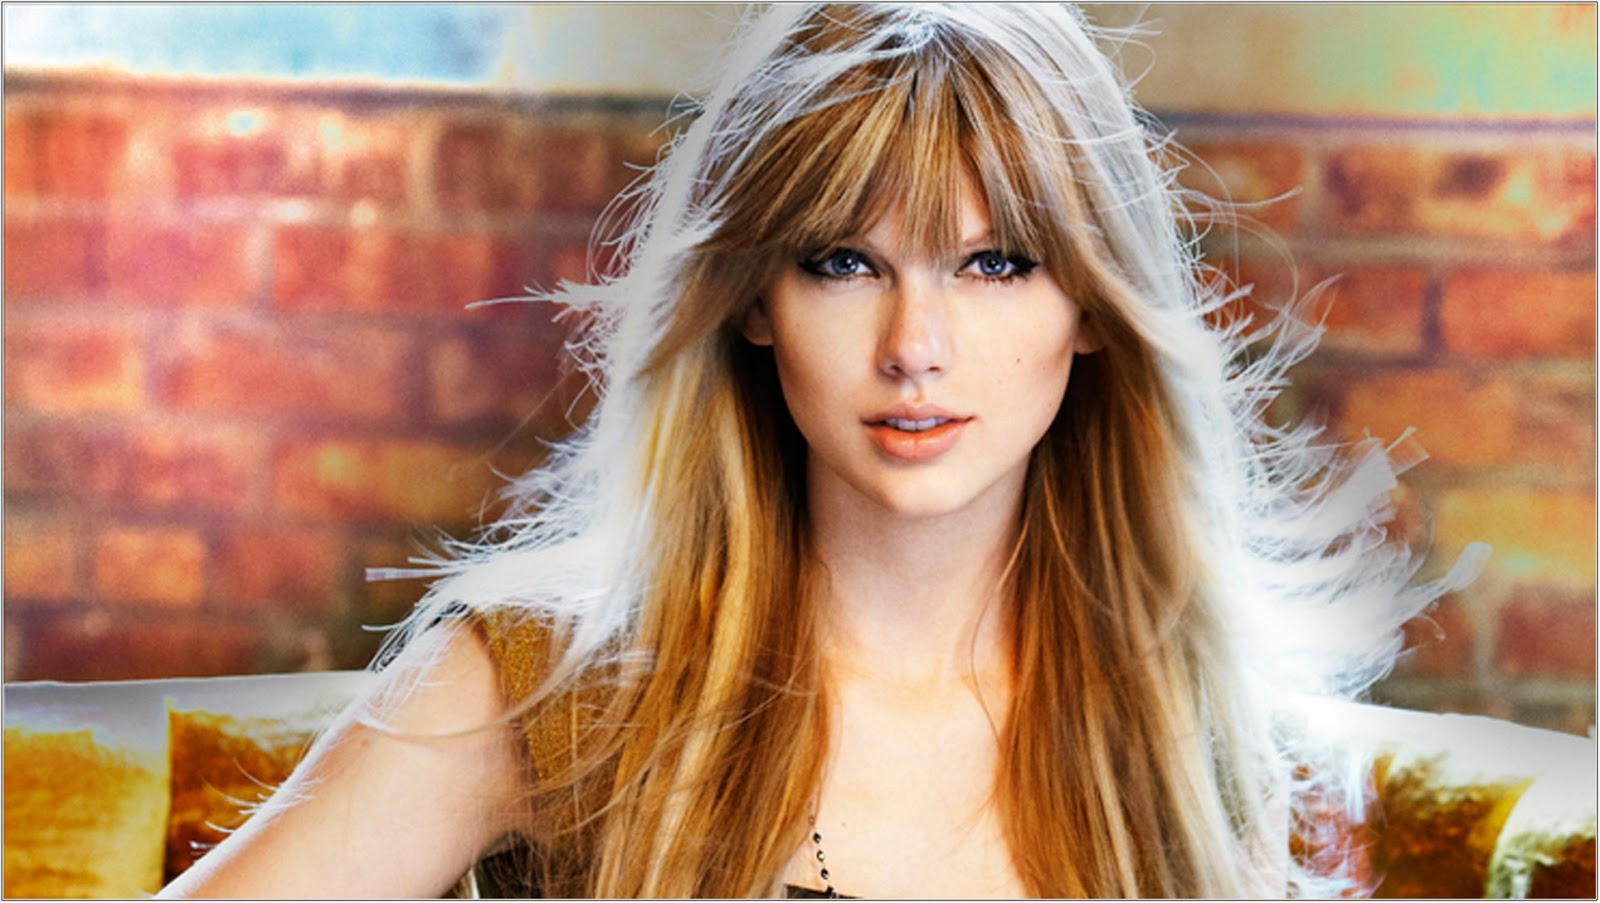 Taylor Swift Wallpaper HD Beautiful Images Collection PicsBrokercom